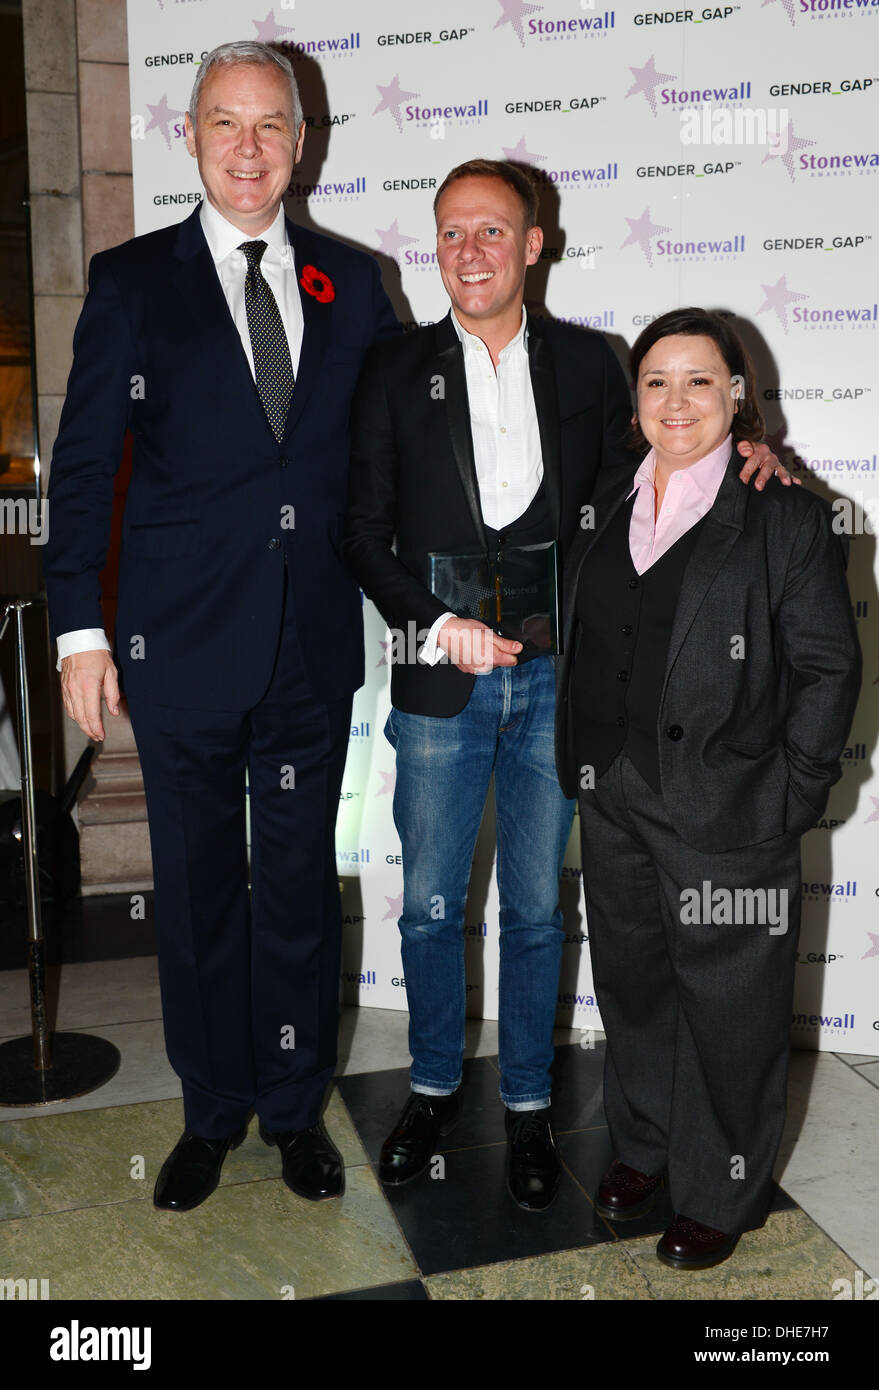 London, UK. 7th Nov 2013.  CEO Ben Summerskill,Antony Cotton and Host Susan Calman at the Stonewall Awards 2013 taking place at the Victoria and Albert Museum. Credit:  See Li/Alamy Live News - Stock Image